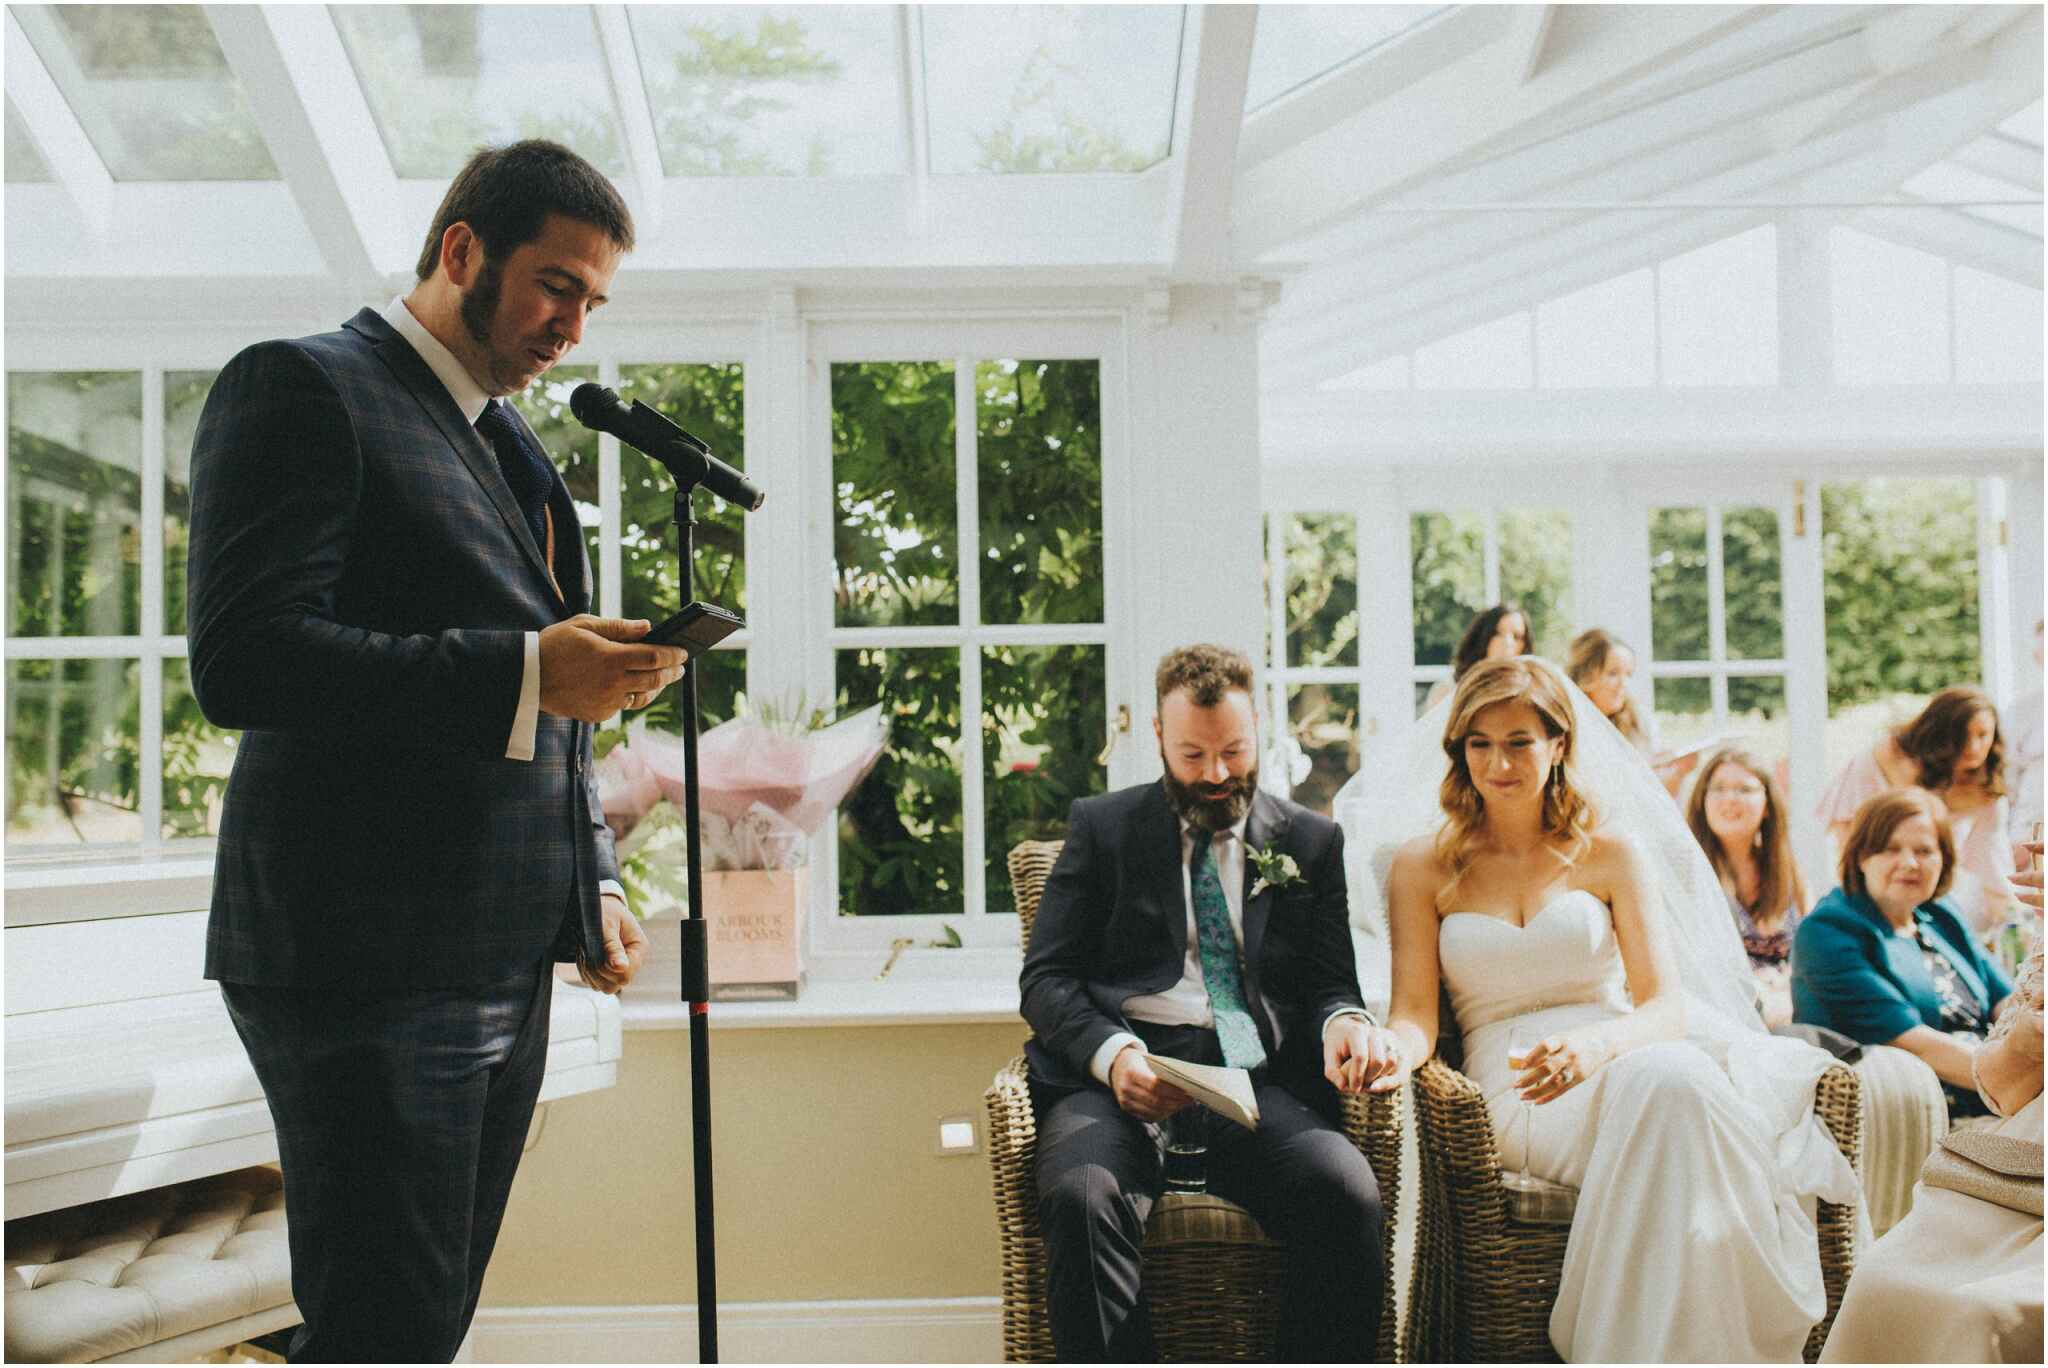 ballymagarvey village wedding 00109 - Fun and Relaxed wedding and elopement photography in Ireland, perfect for adventurous and outdoorsy couples